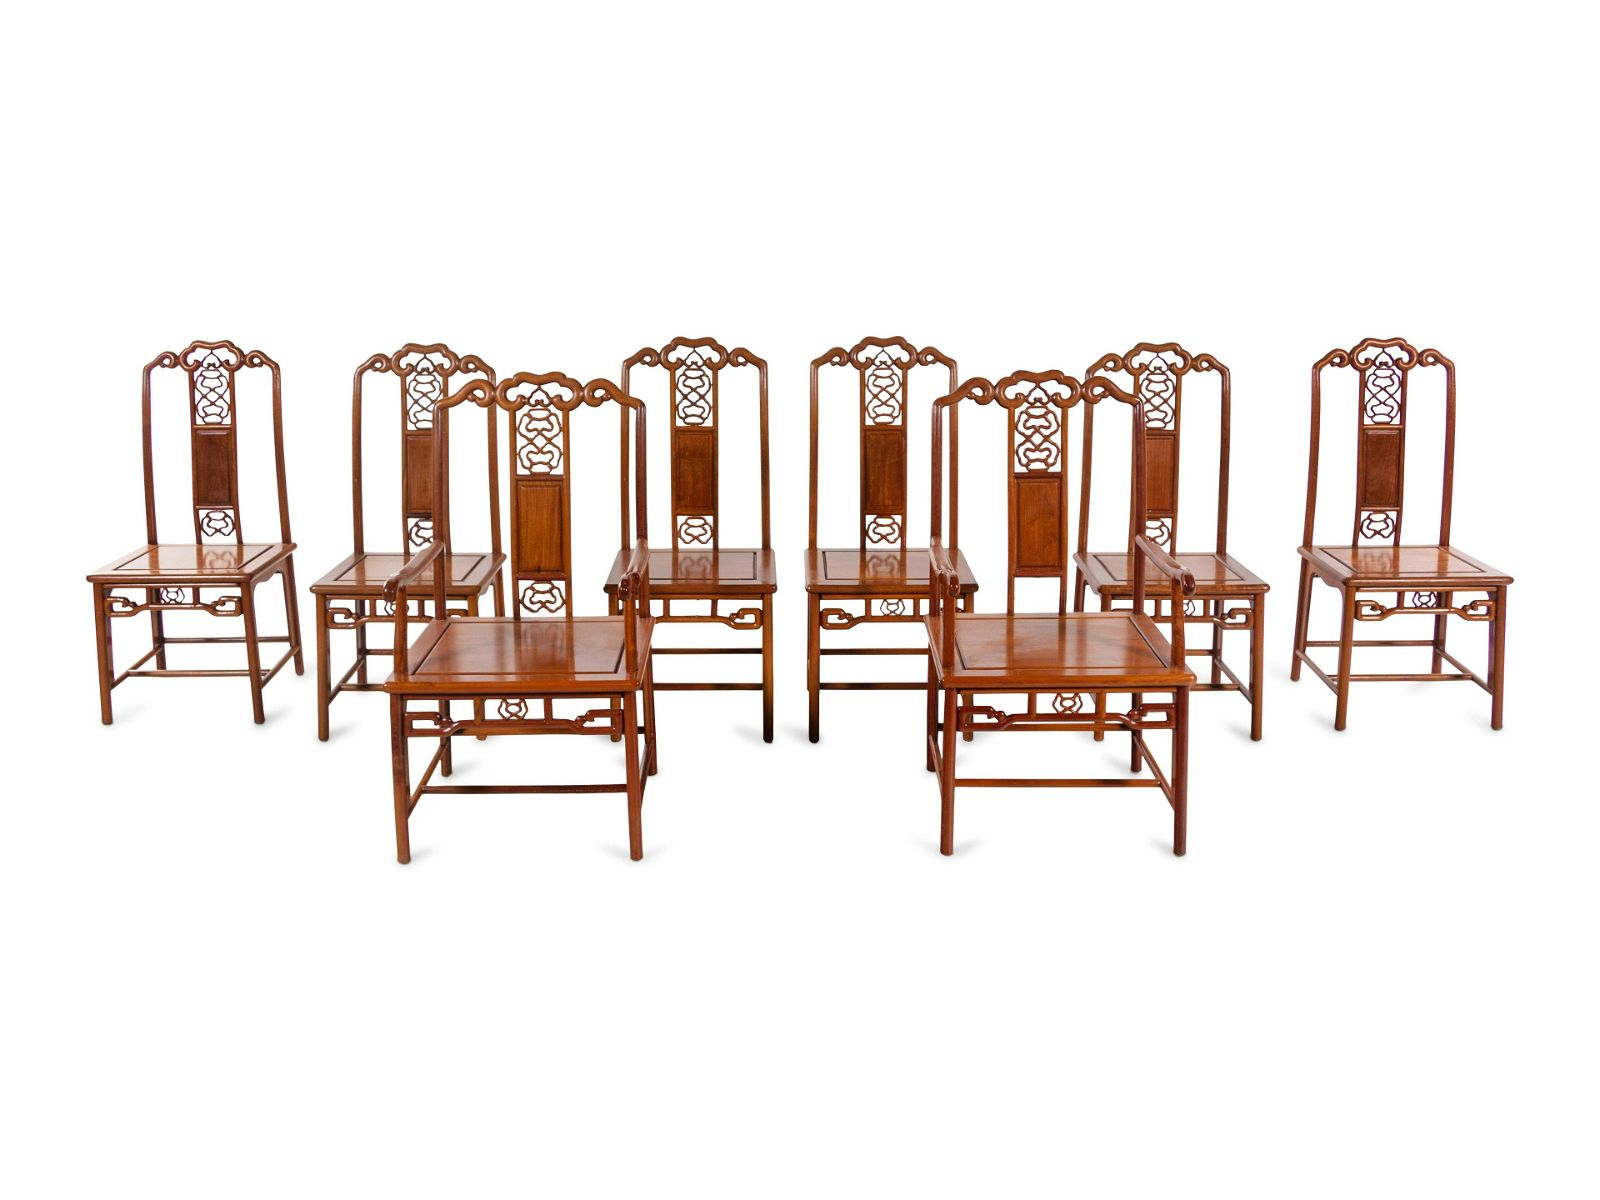 A Set of ChineseHuali Dining Table and Chairs